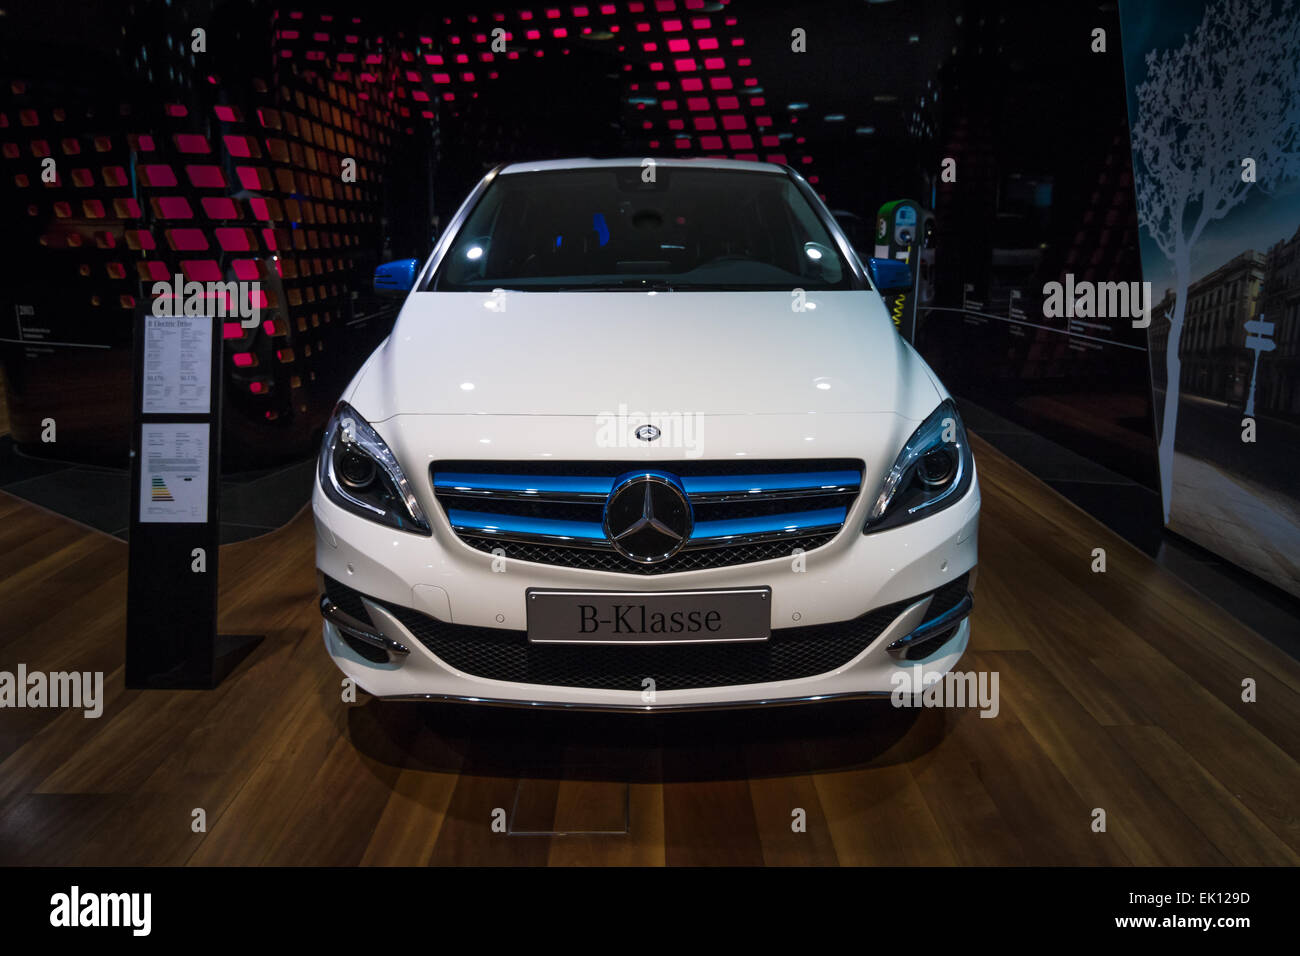 A compact luxury car Mercedes-Benz B-Class Electric Drive. The first production car with an electric engine. Produced - Stock Image